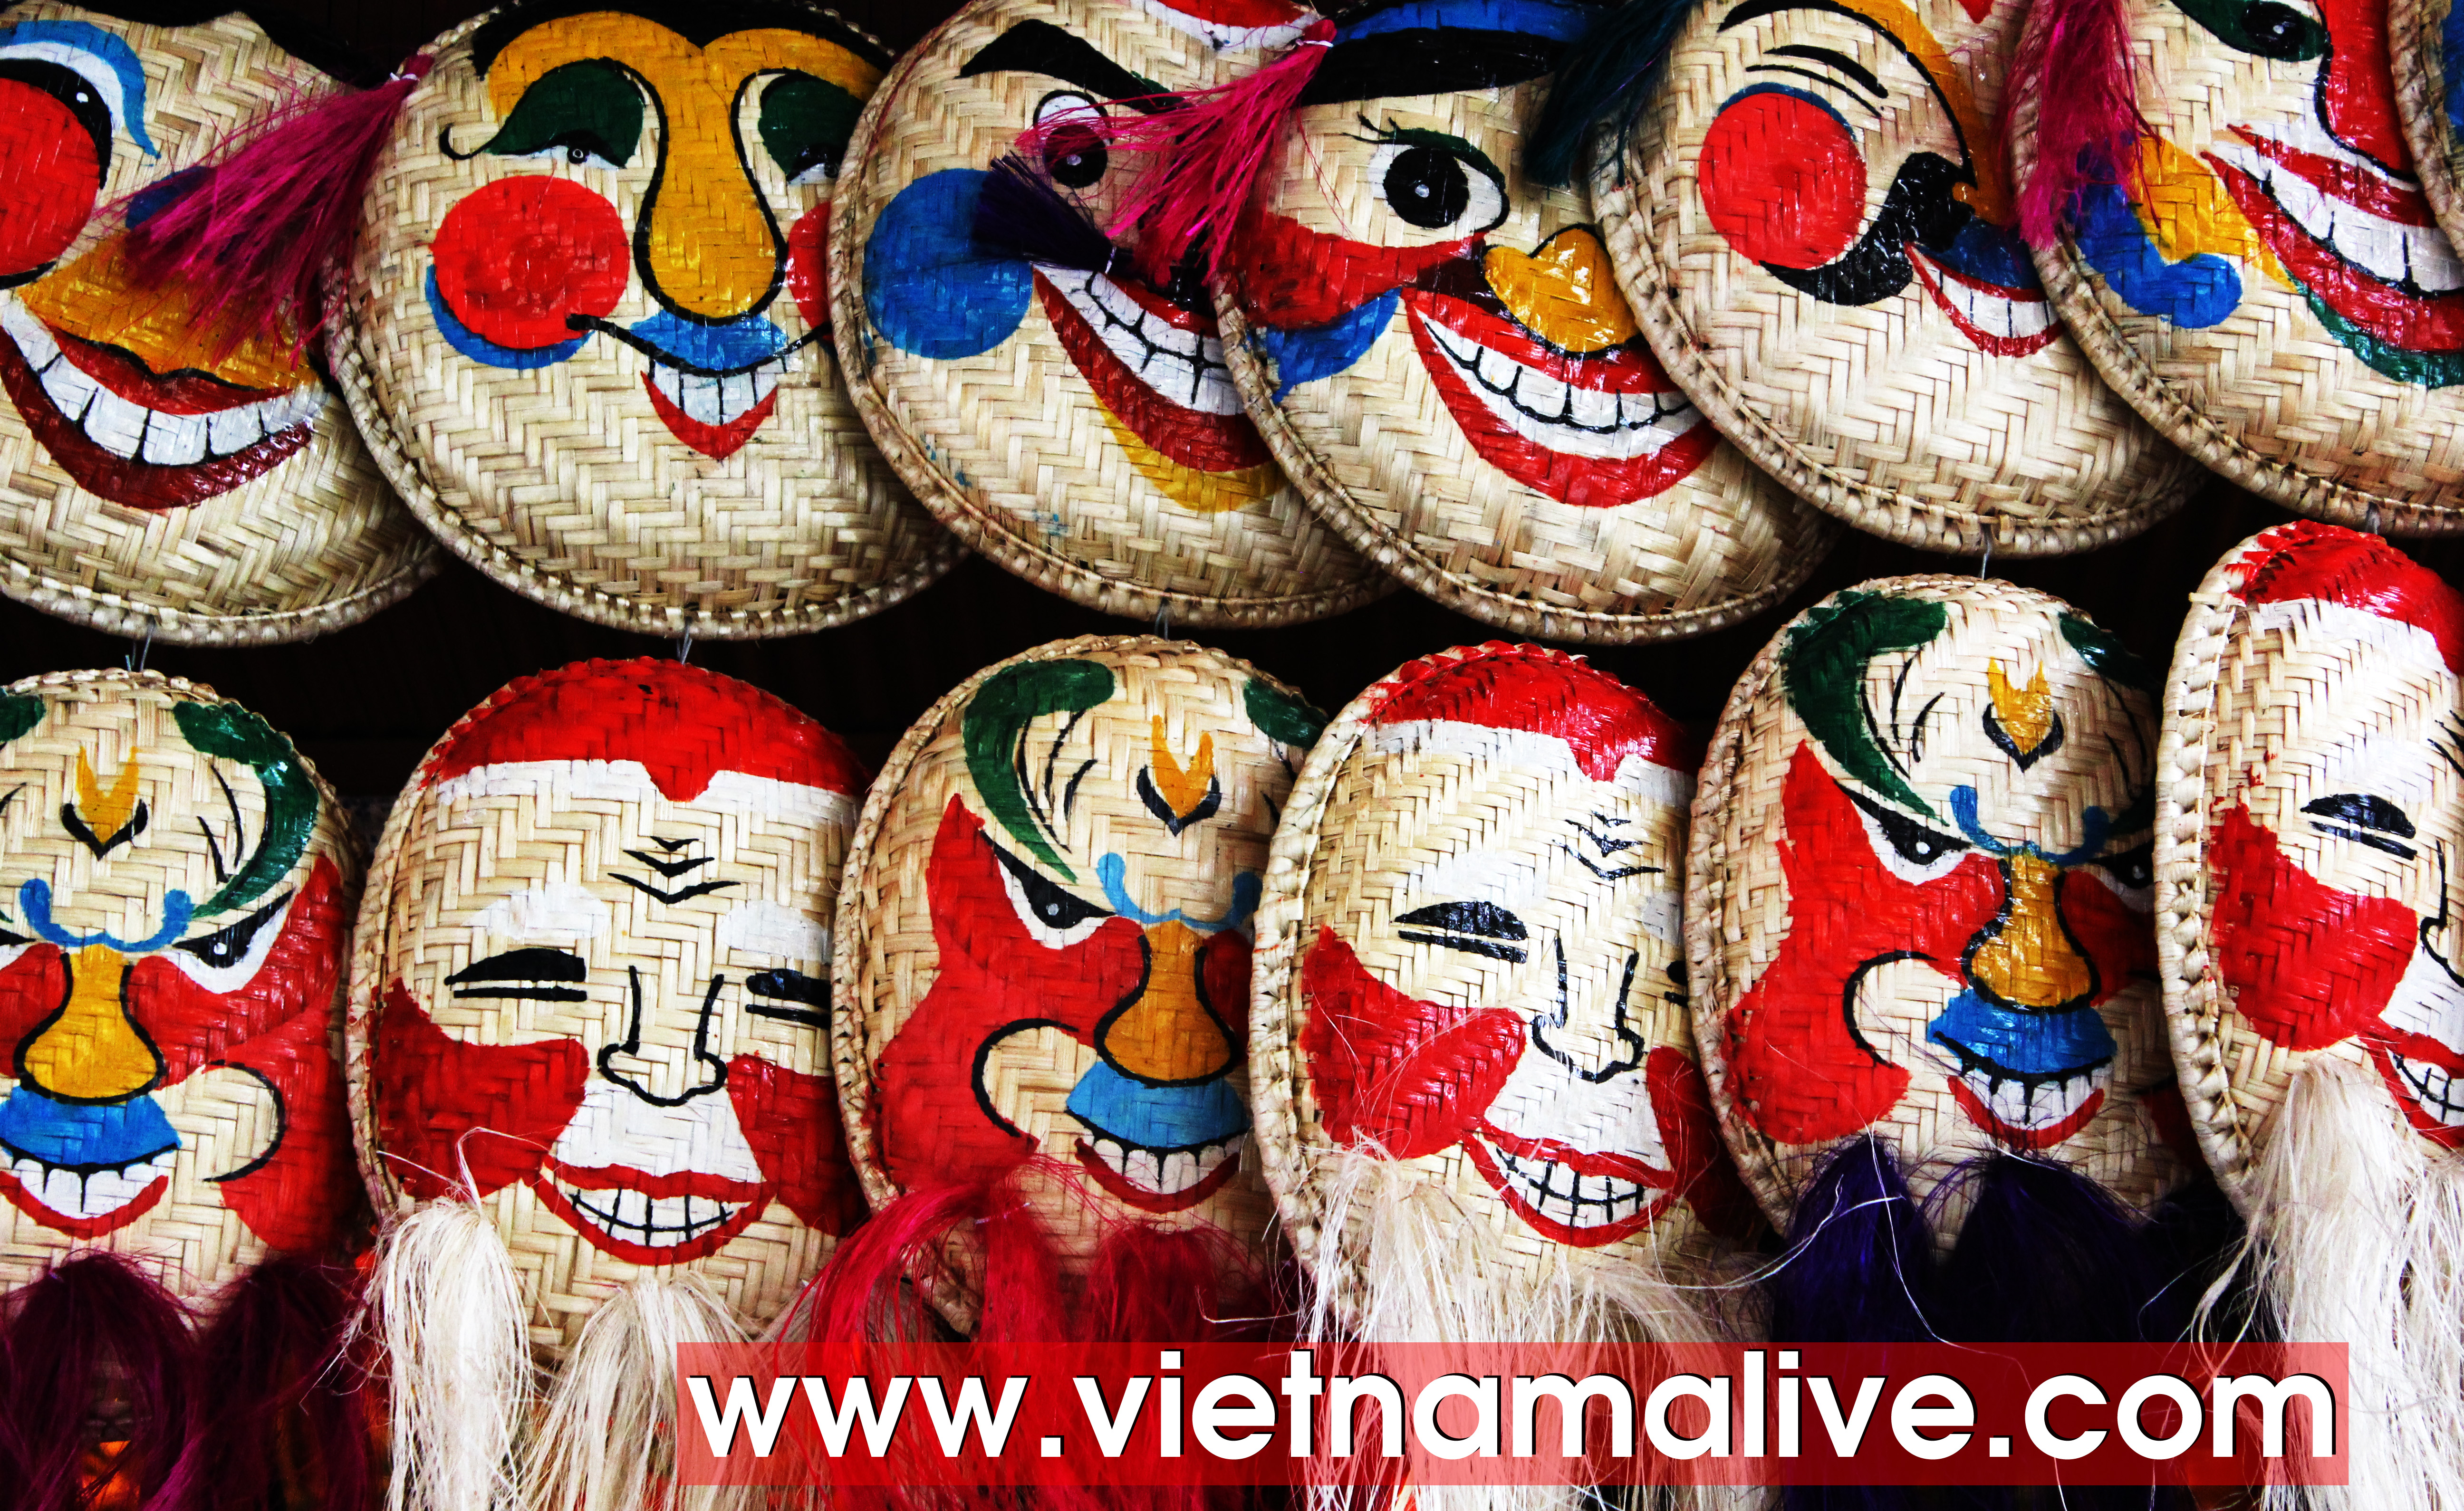 Vietnam Alive - Discover the real Vietnam & Indochina!